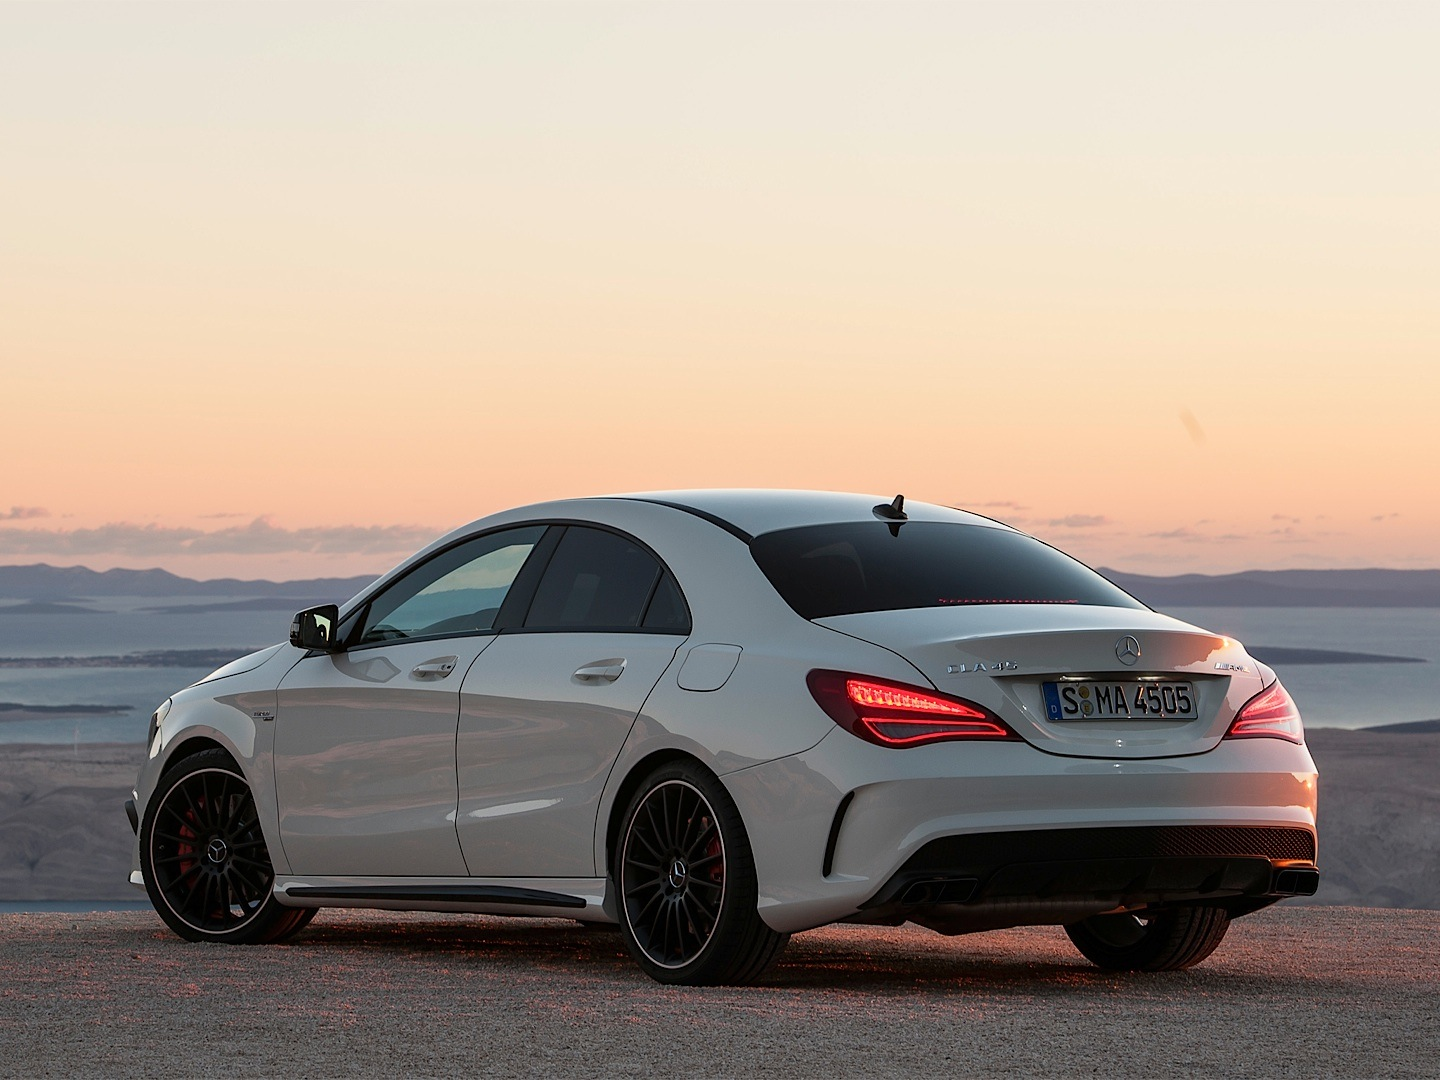 mercedes benz cla 45 amg driven by vadimauto autoevolution. Black Bedroom Furniture Sets. Home Design Ideas